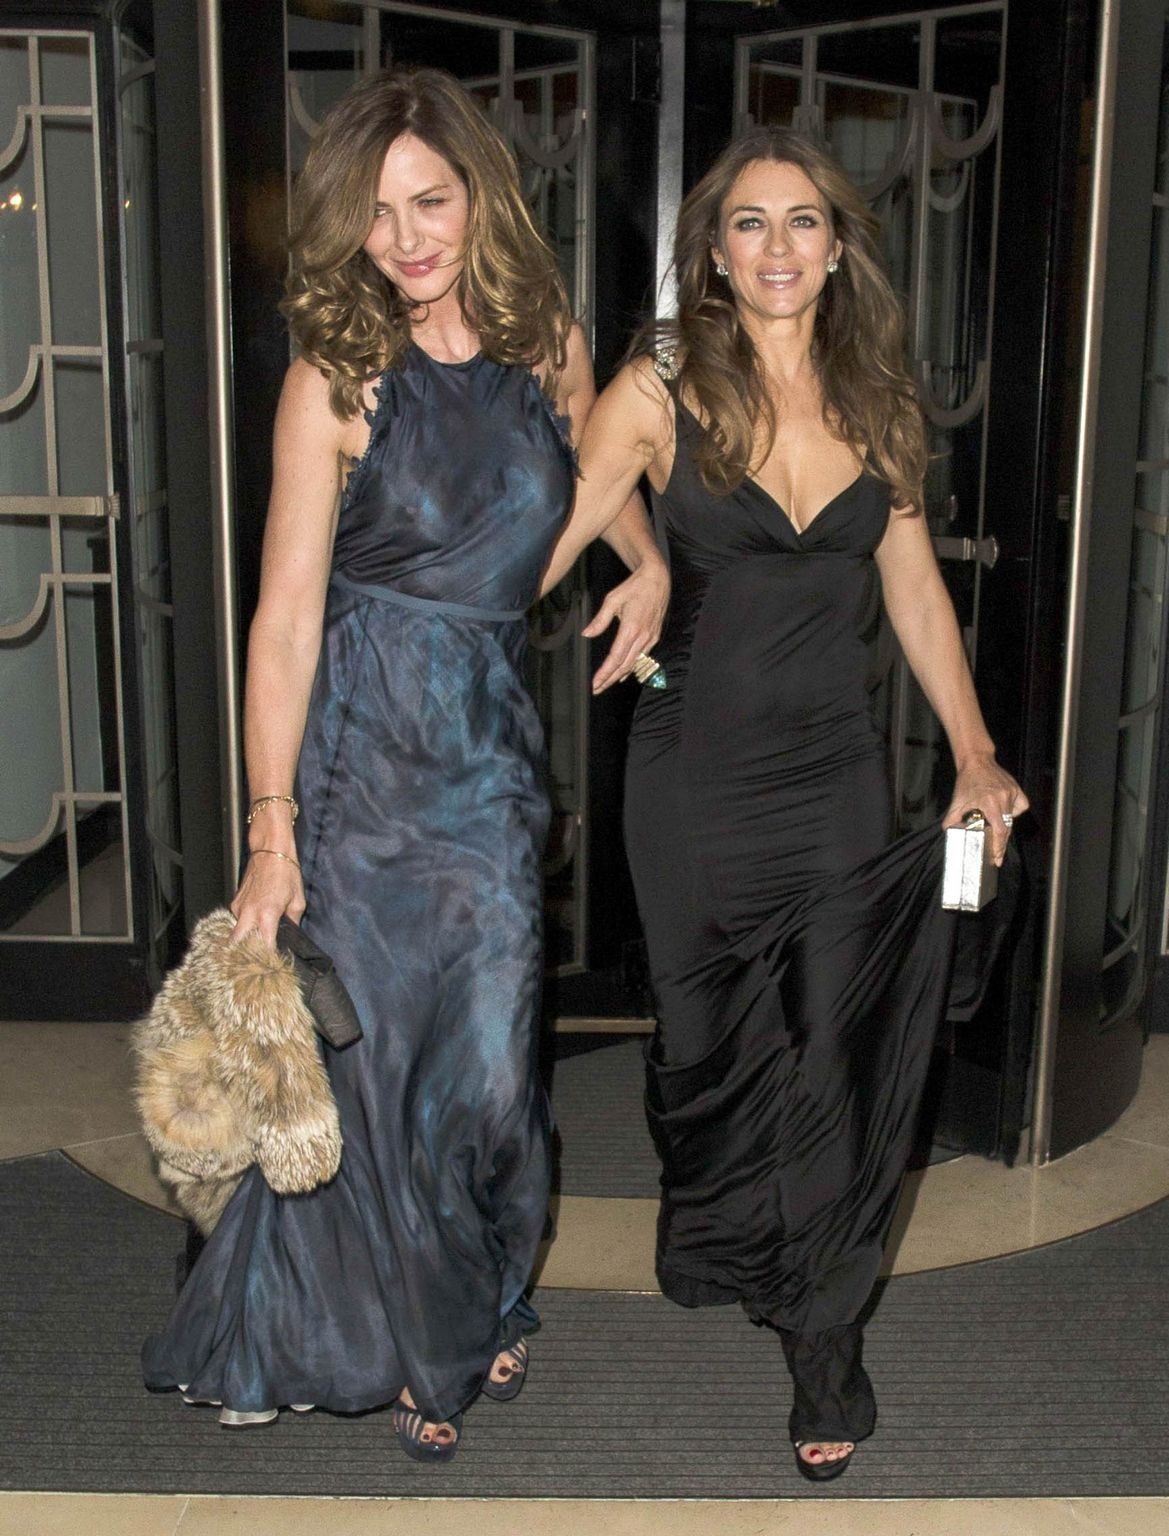 Elizabeth Hurley, Trinny Woodall and Natalie Imbruglia at Quercus Biasi Foundation Spring Gala-2